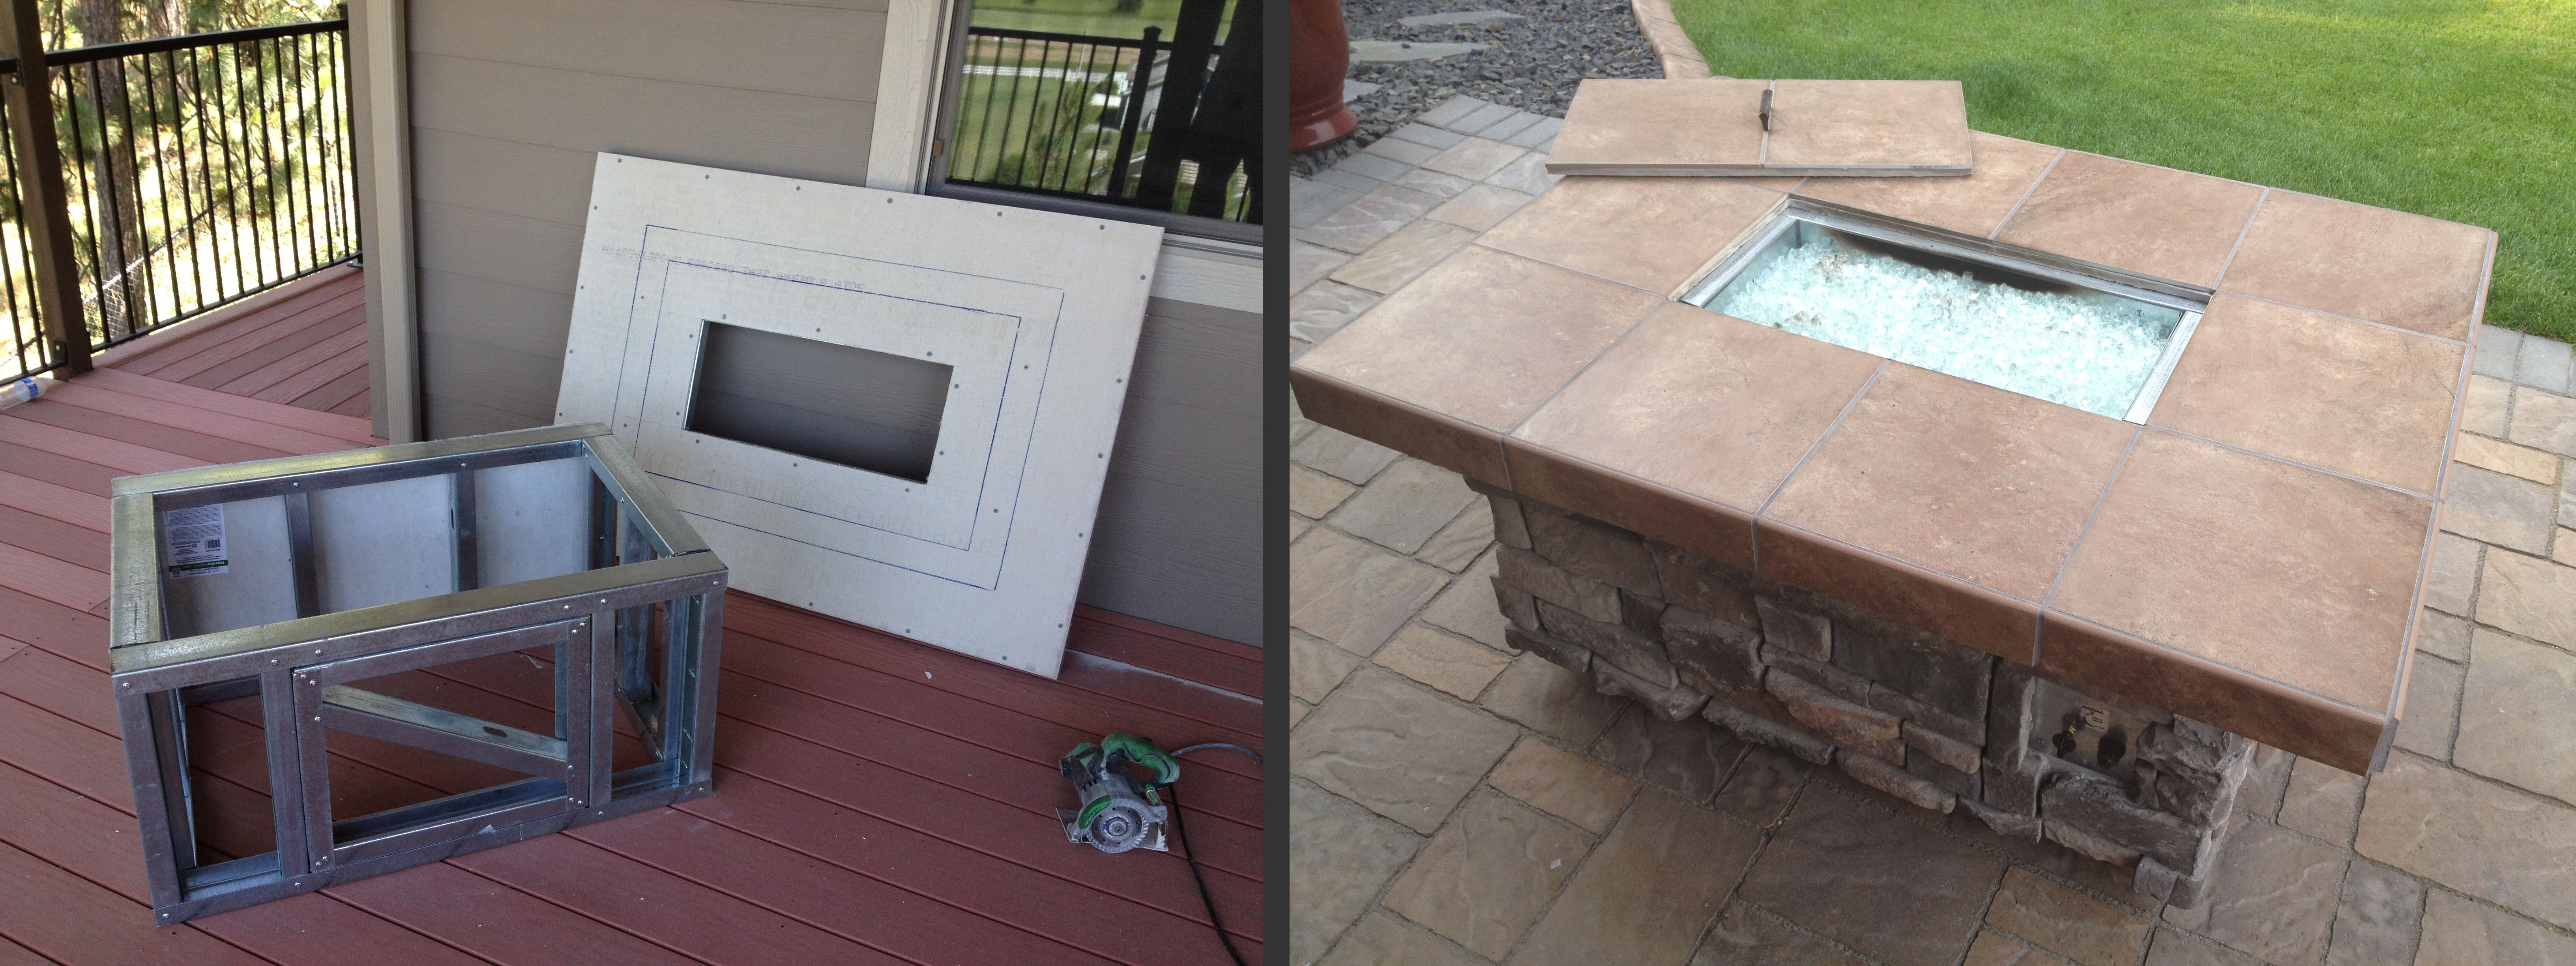 a gas fire pit using scafco steel studs to create the frame